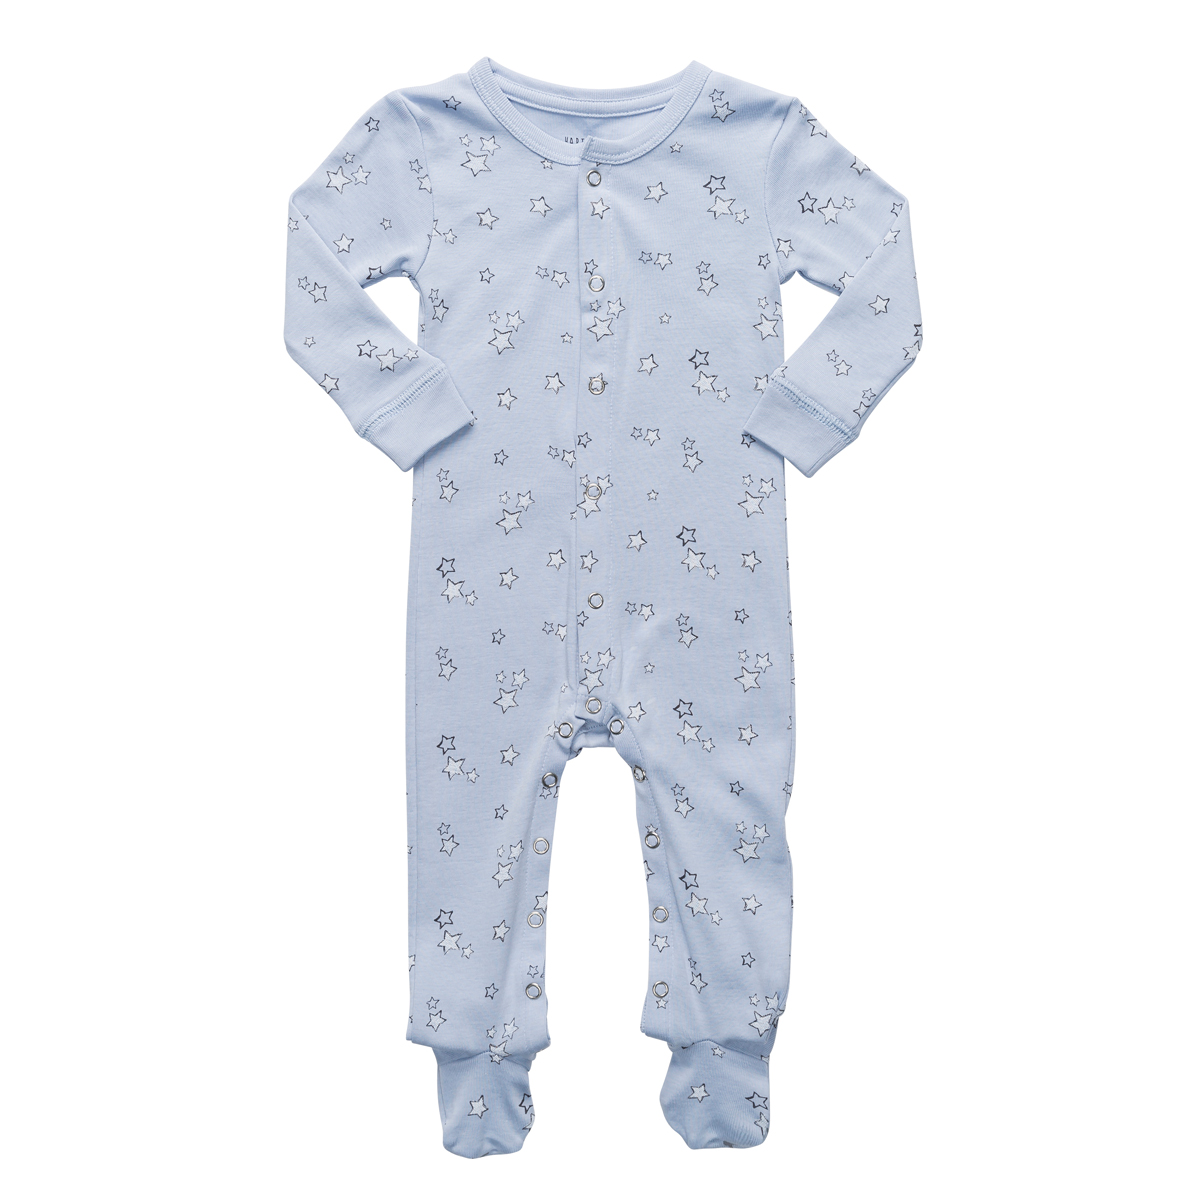 Hart + Land Long Sleeve Footie in Galaxy Star Print in Zen Blue